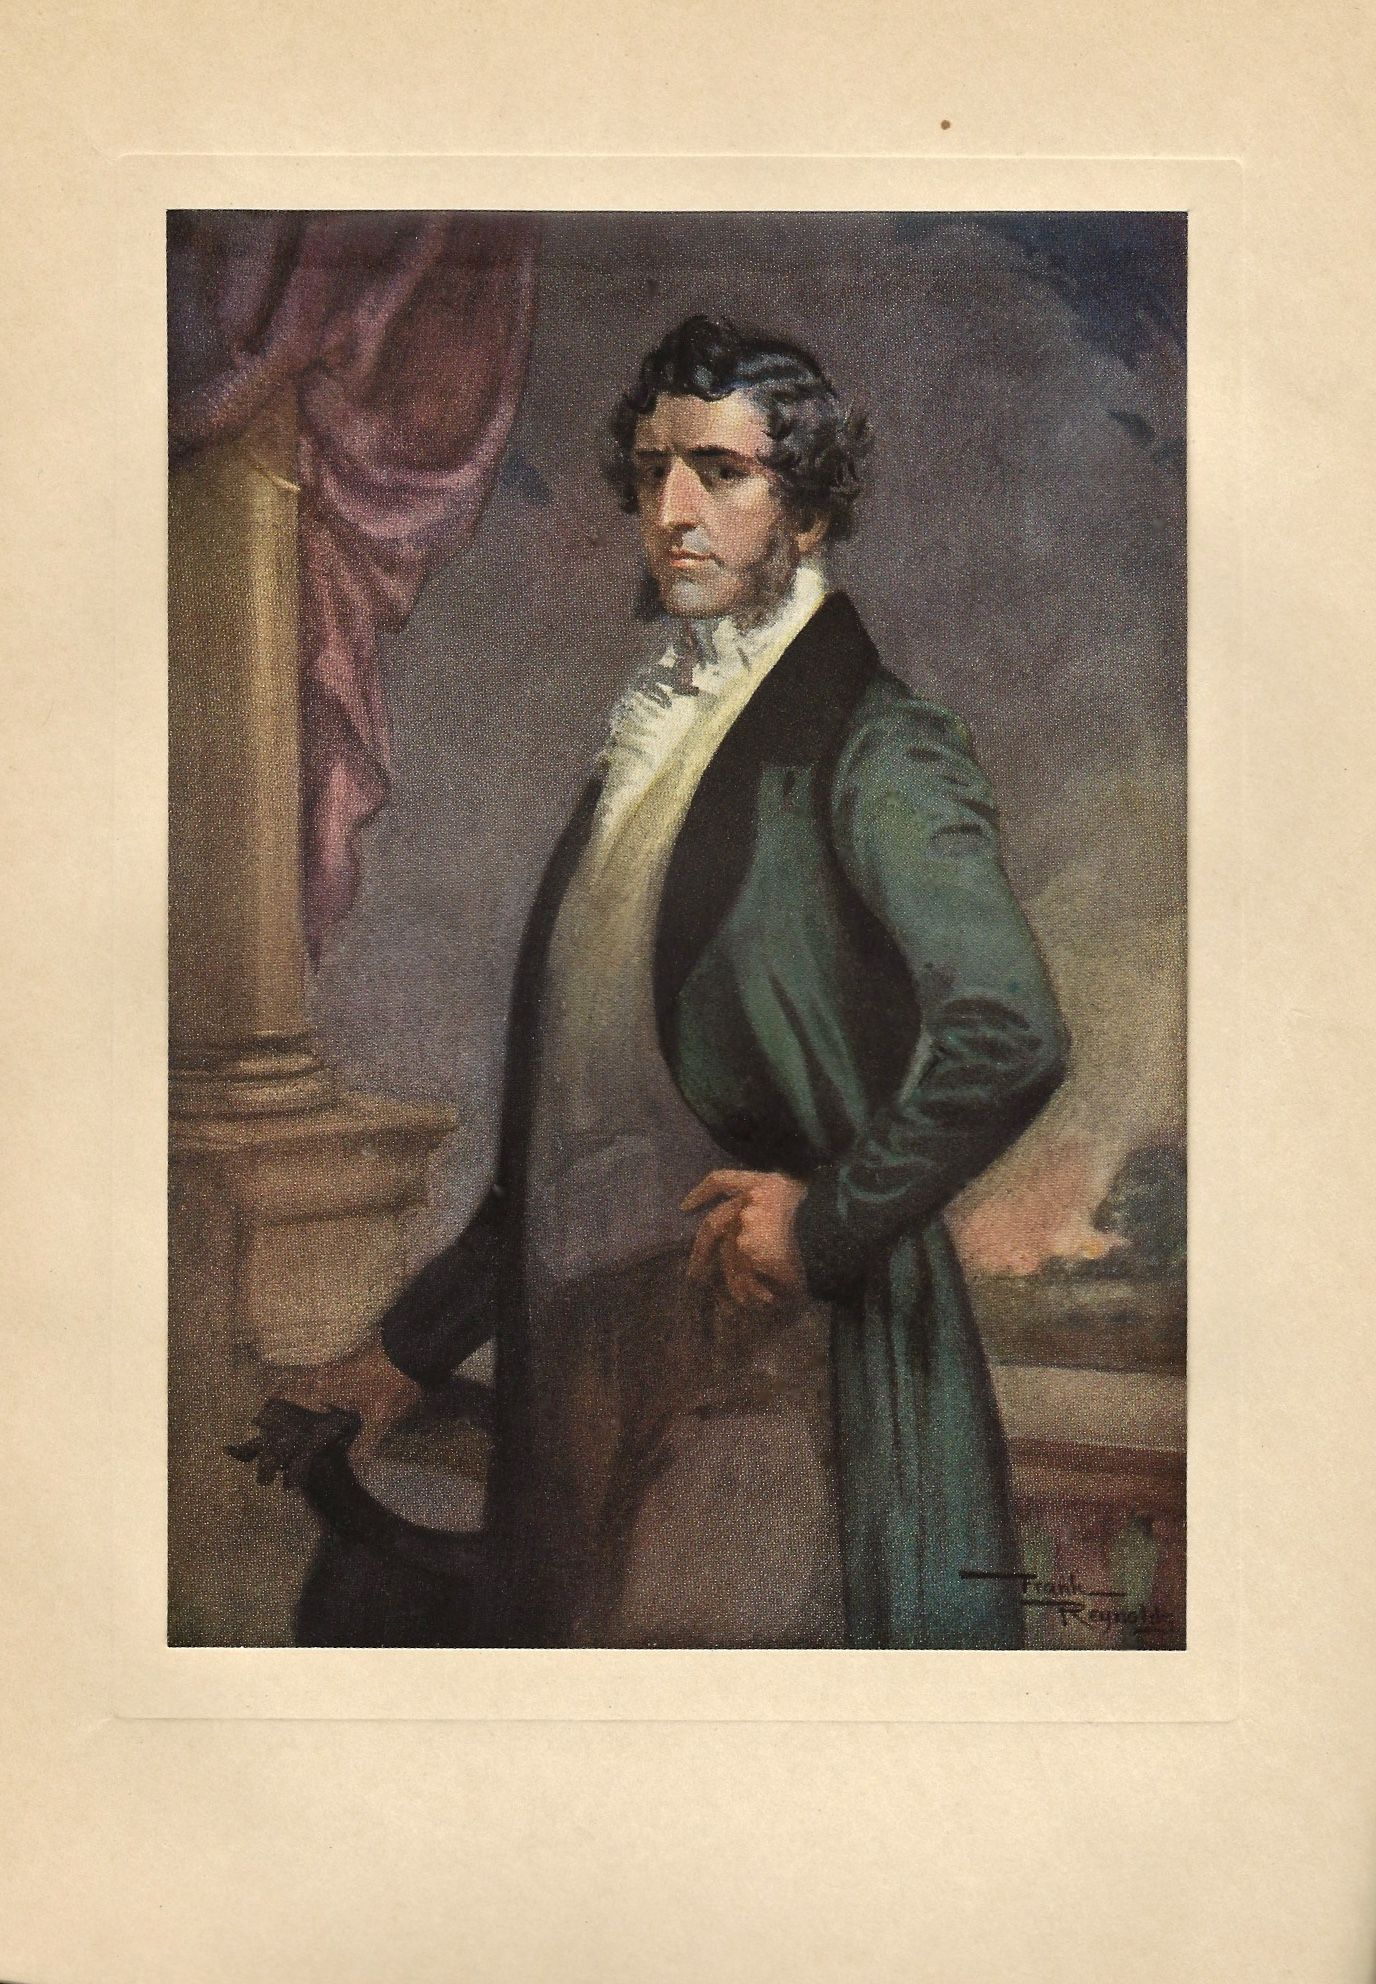 mr murdstone a illustration by frank reynolds for charles  characters in david copperfield david copperfield